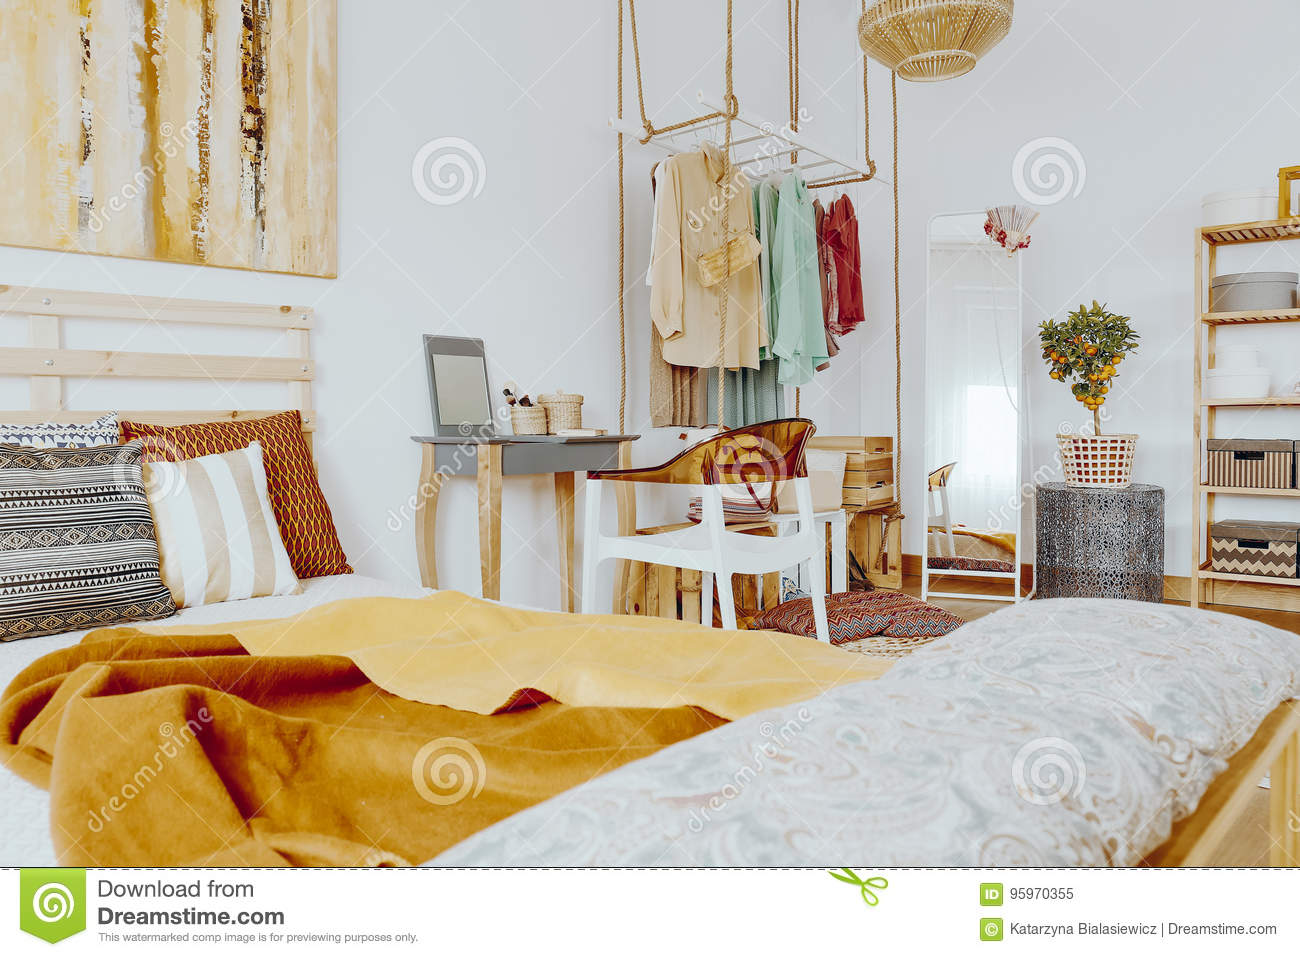 Bed With Pillows And Blanket Stock Image Image Of Decorations Decorative 95970355